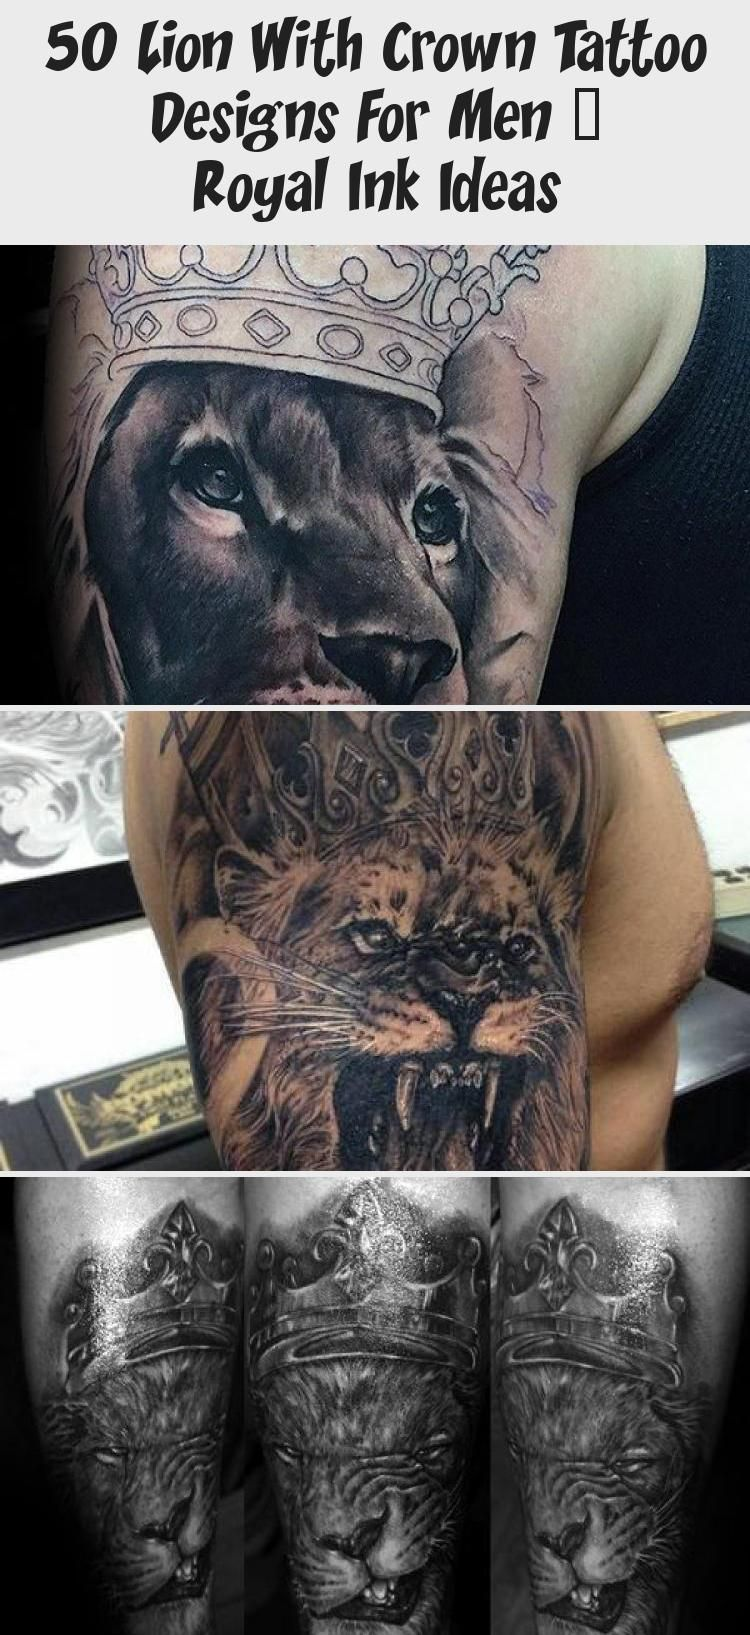 50 lion with crown tattoo designs for men royal ink